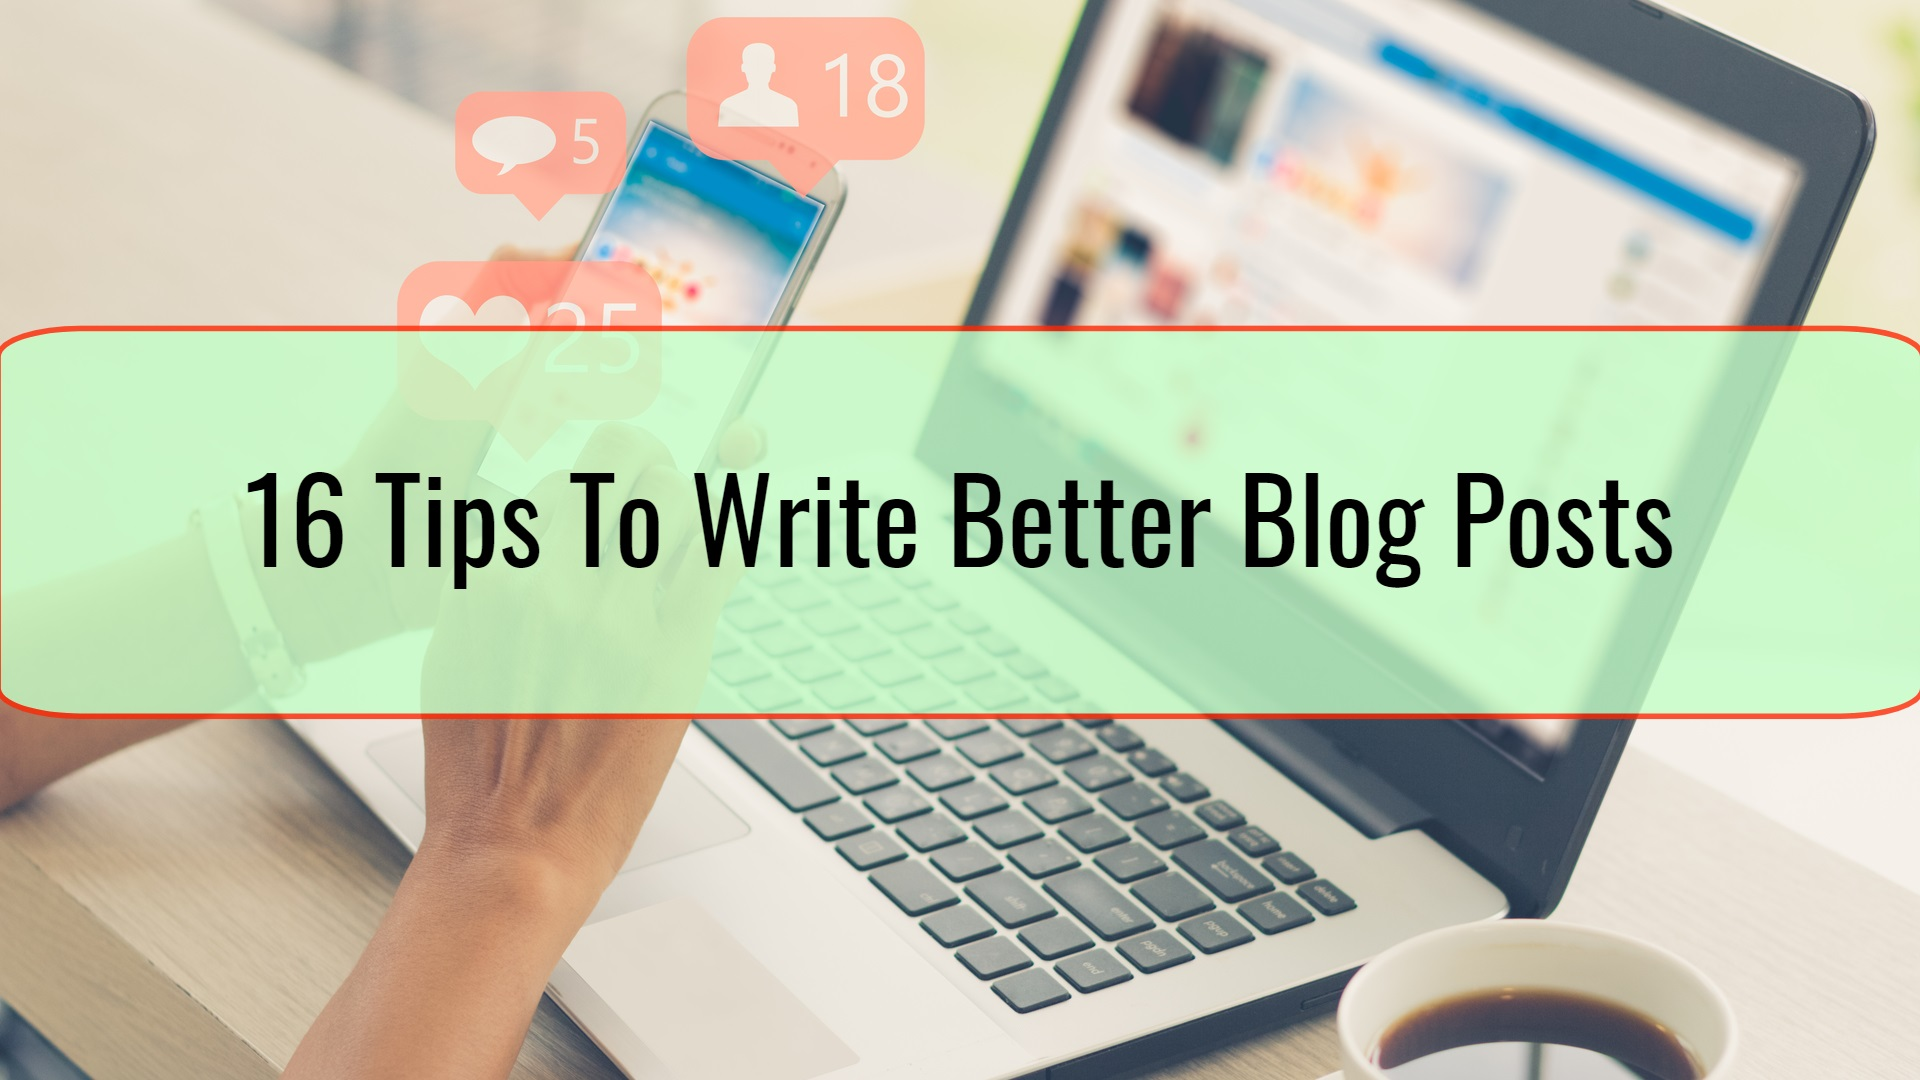 16 Tips To Write Better Blog Posts